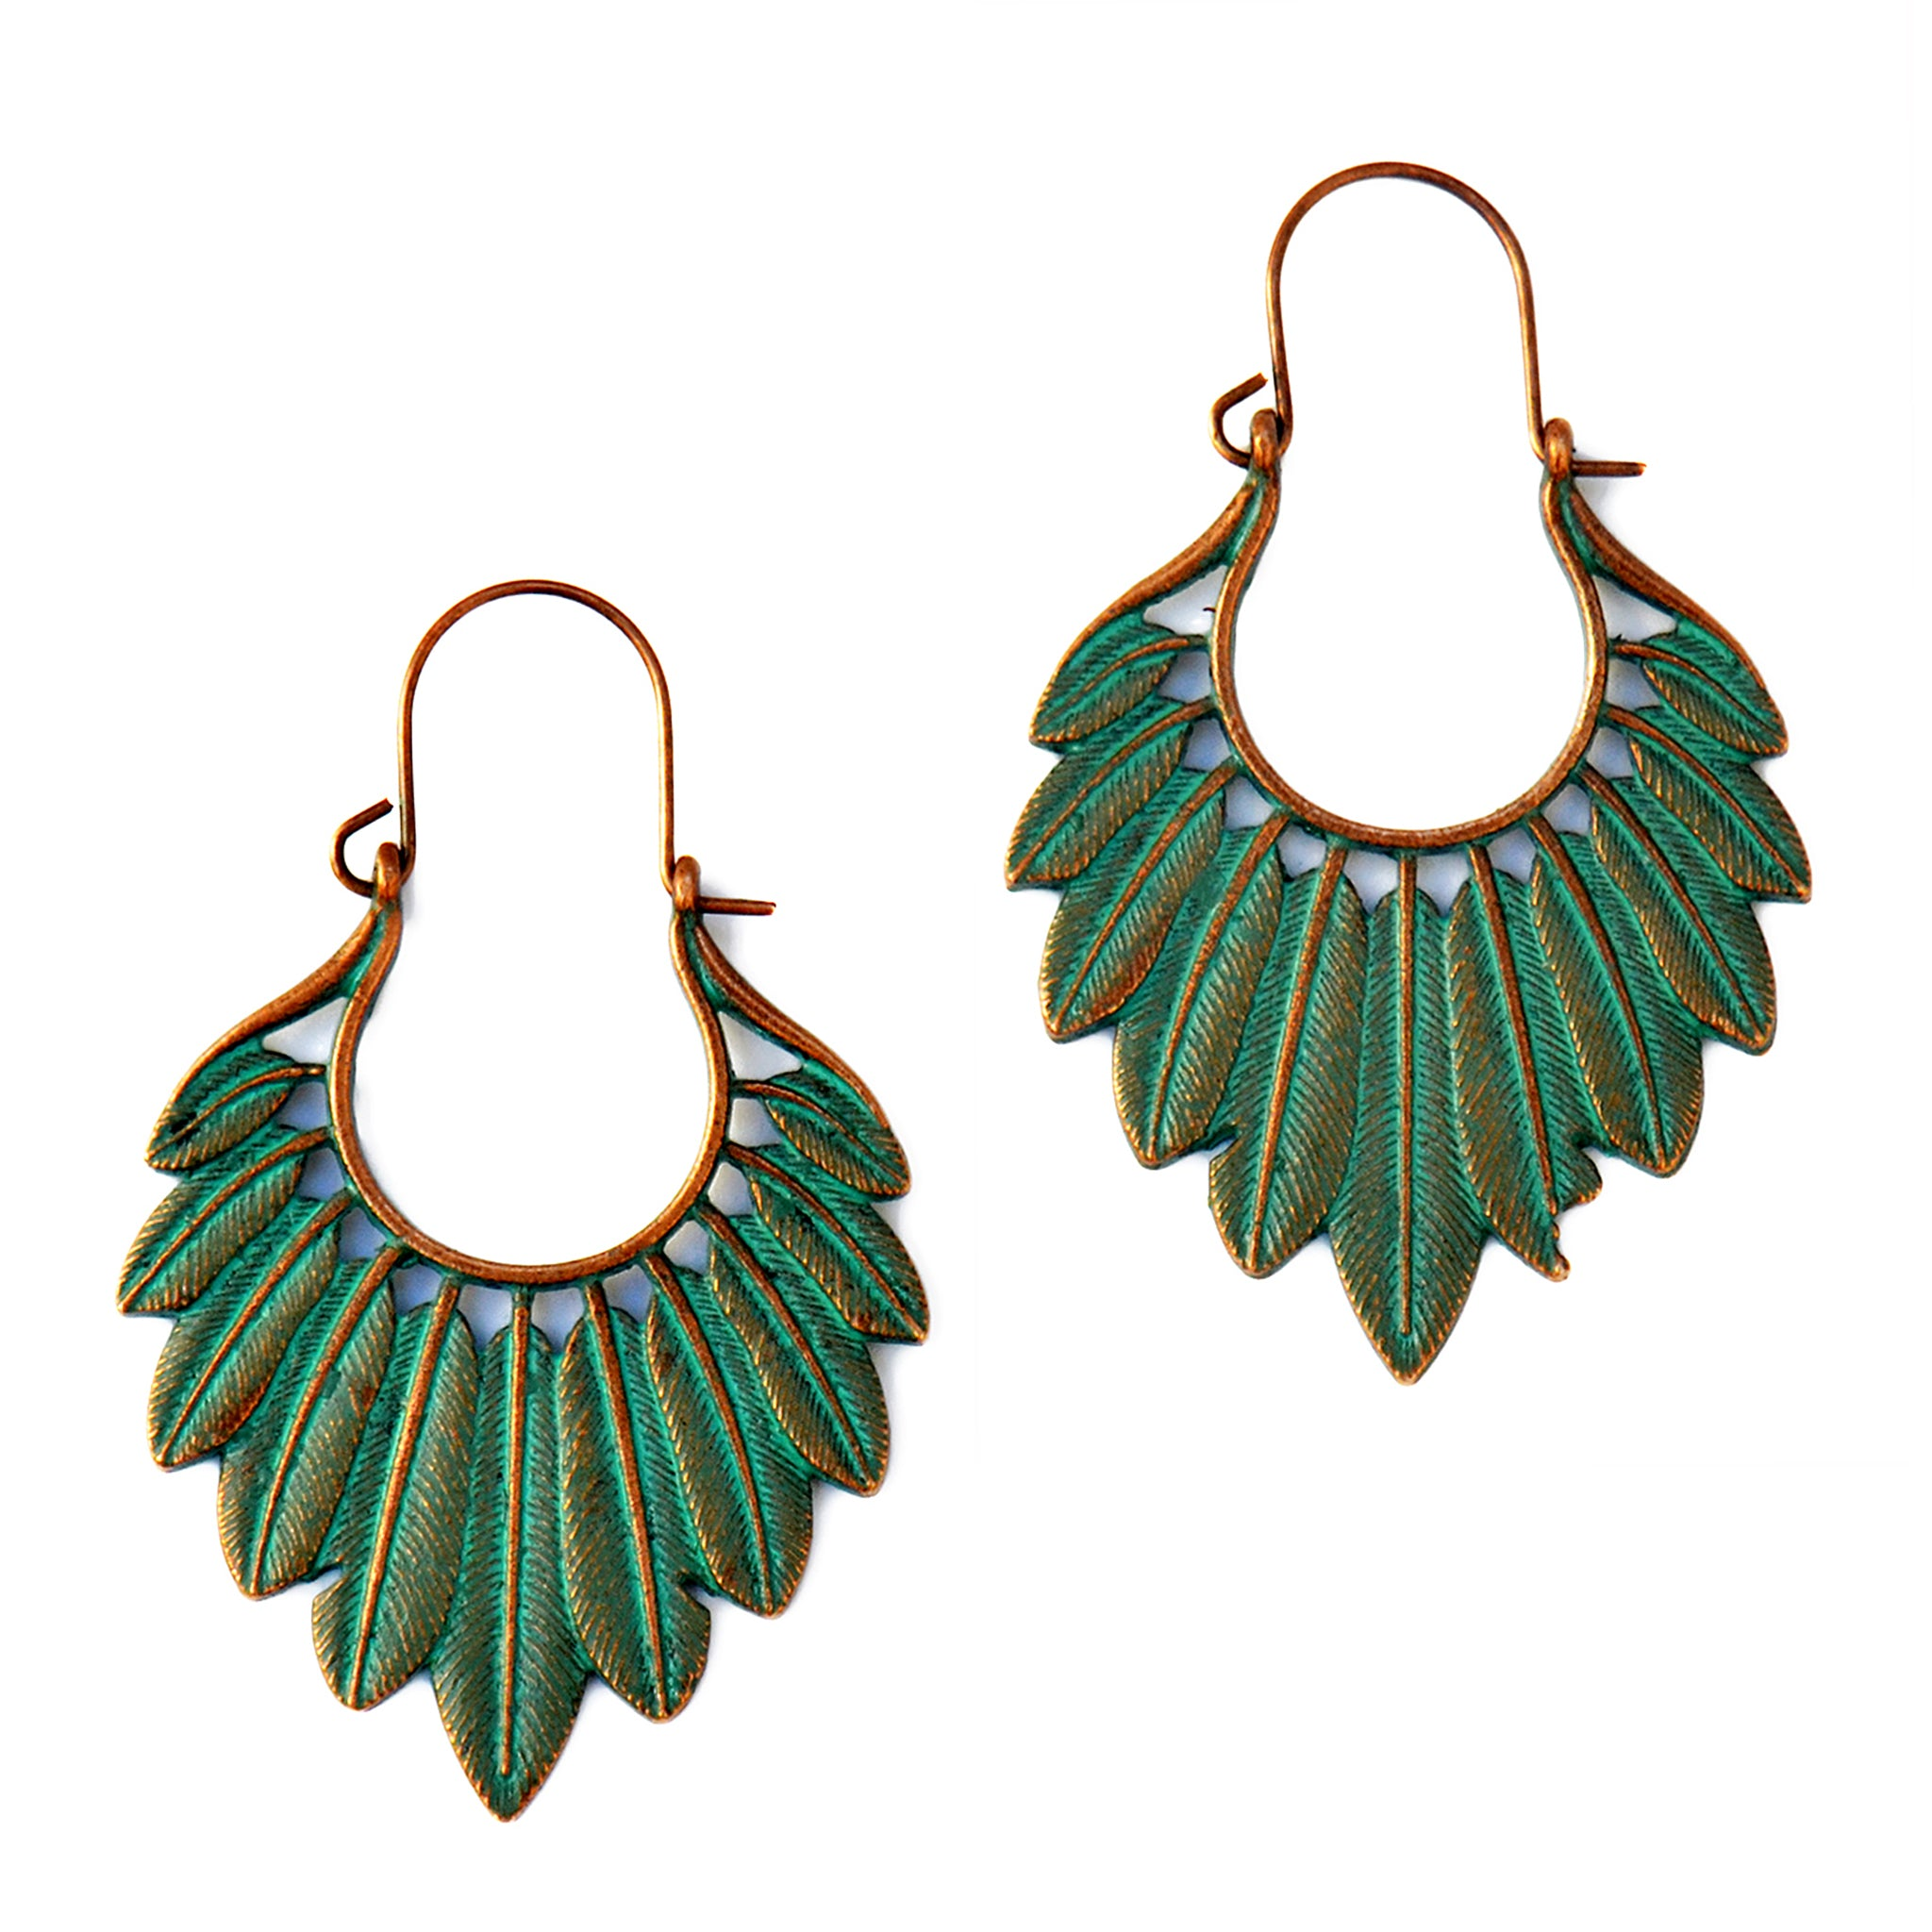 Ethnic feather earrings verdigris